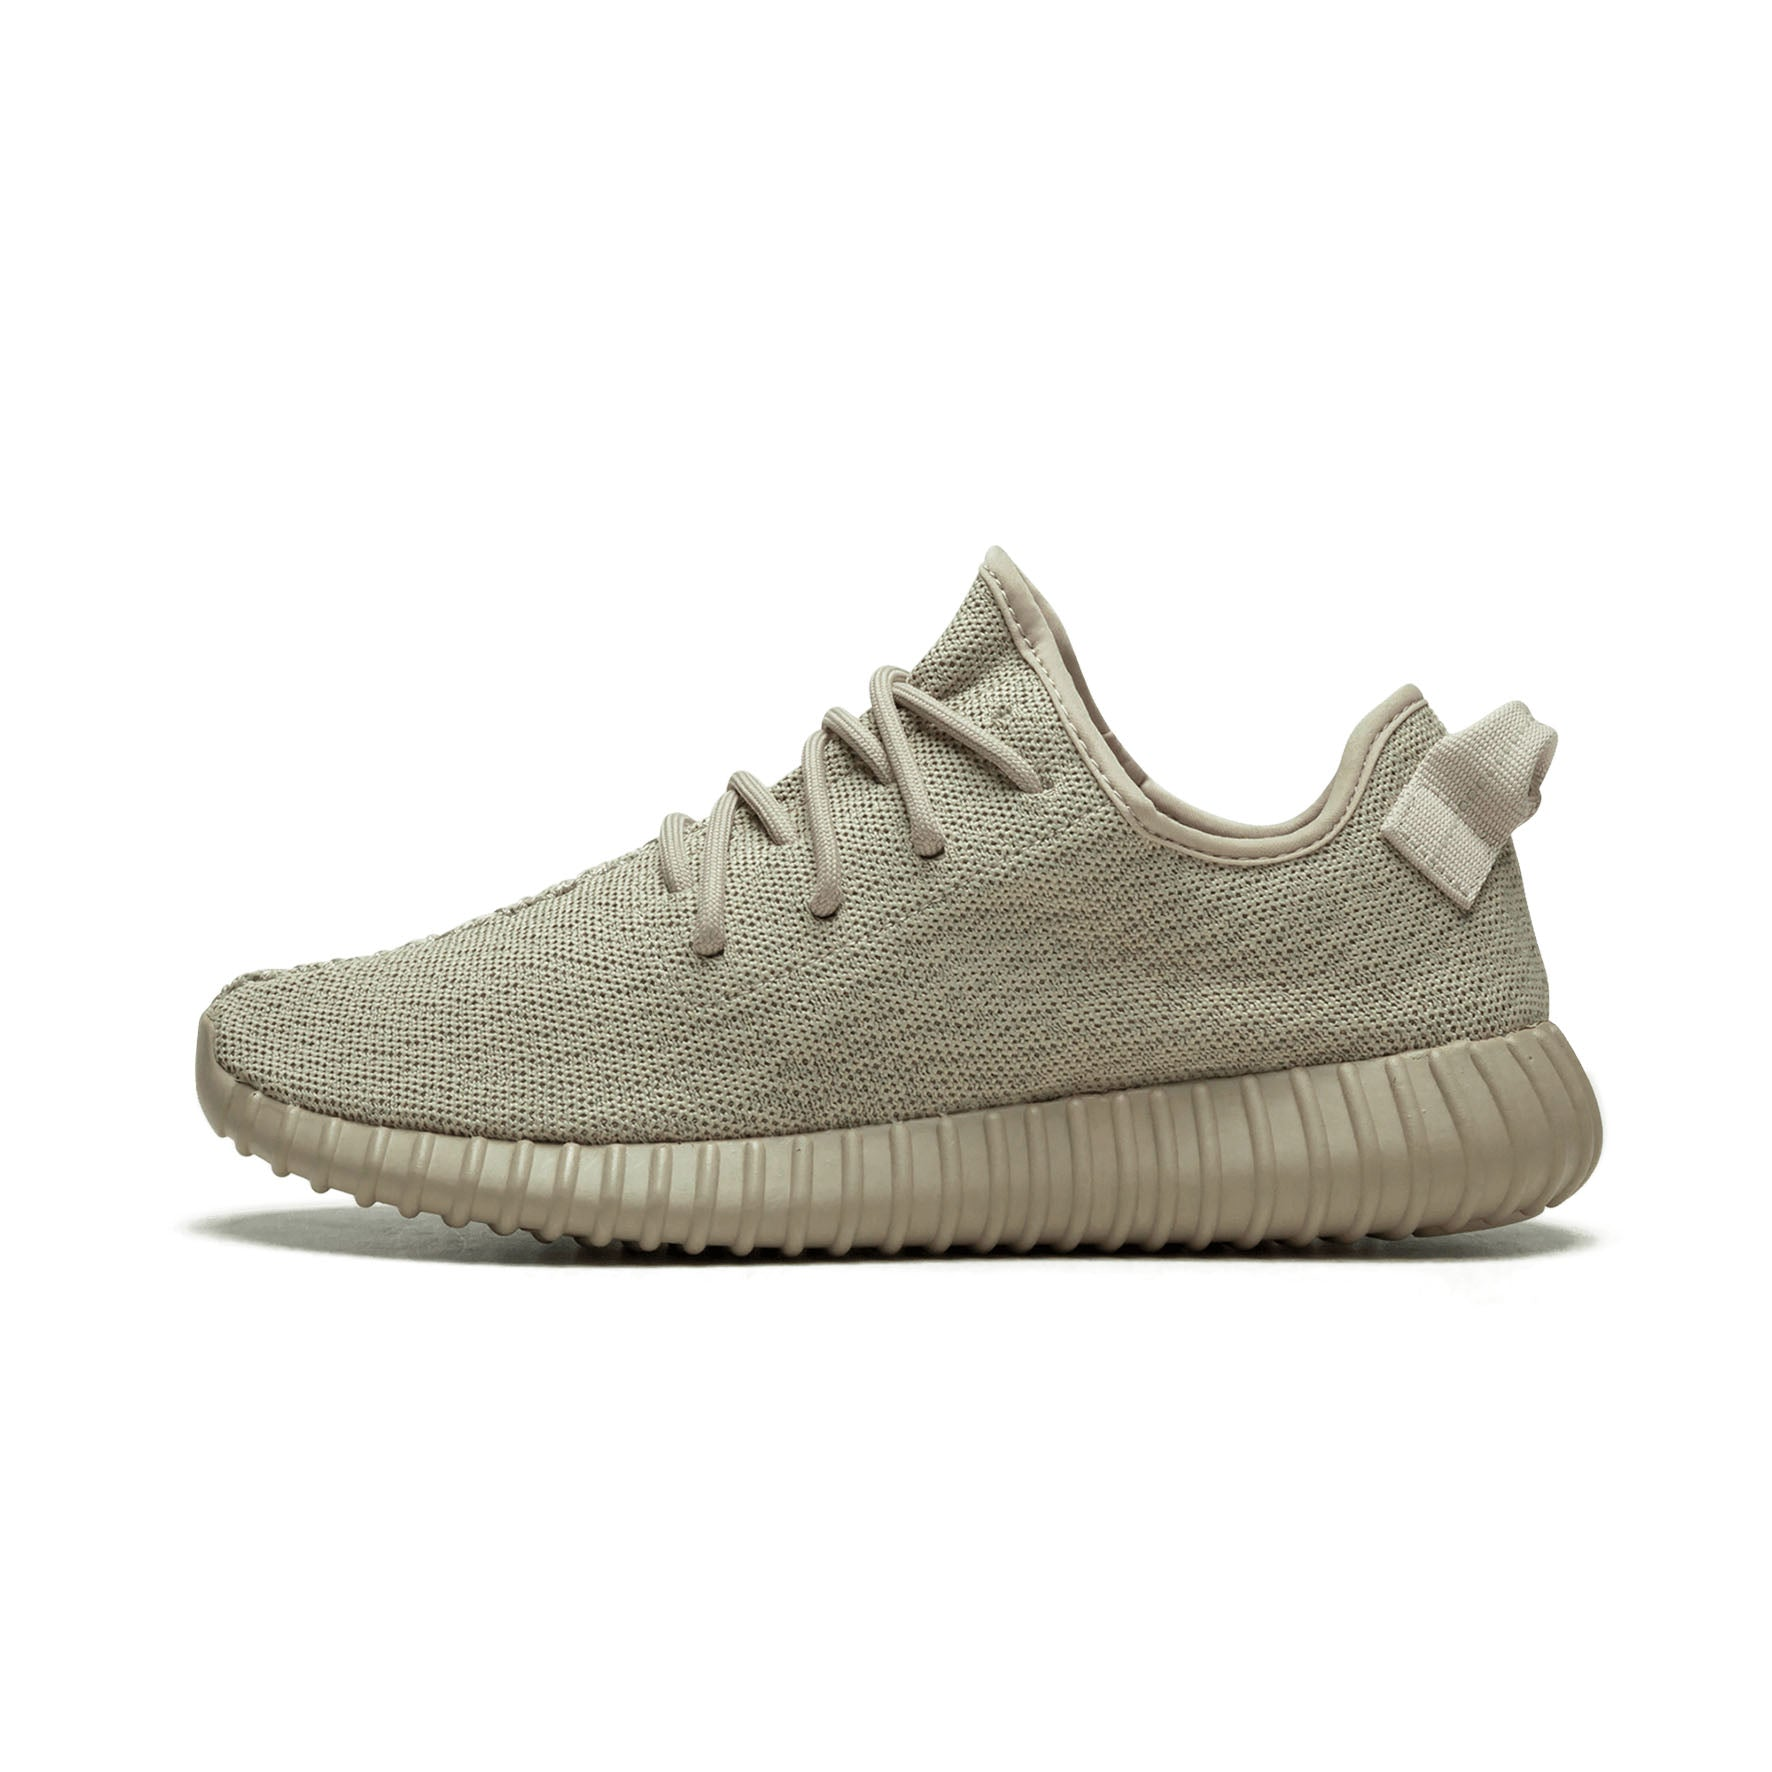 Adidas Yeezy Boost 350 Oxford Tan - AQ2661 - Sneakersfromfrance